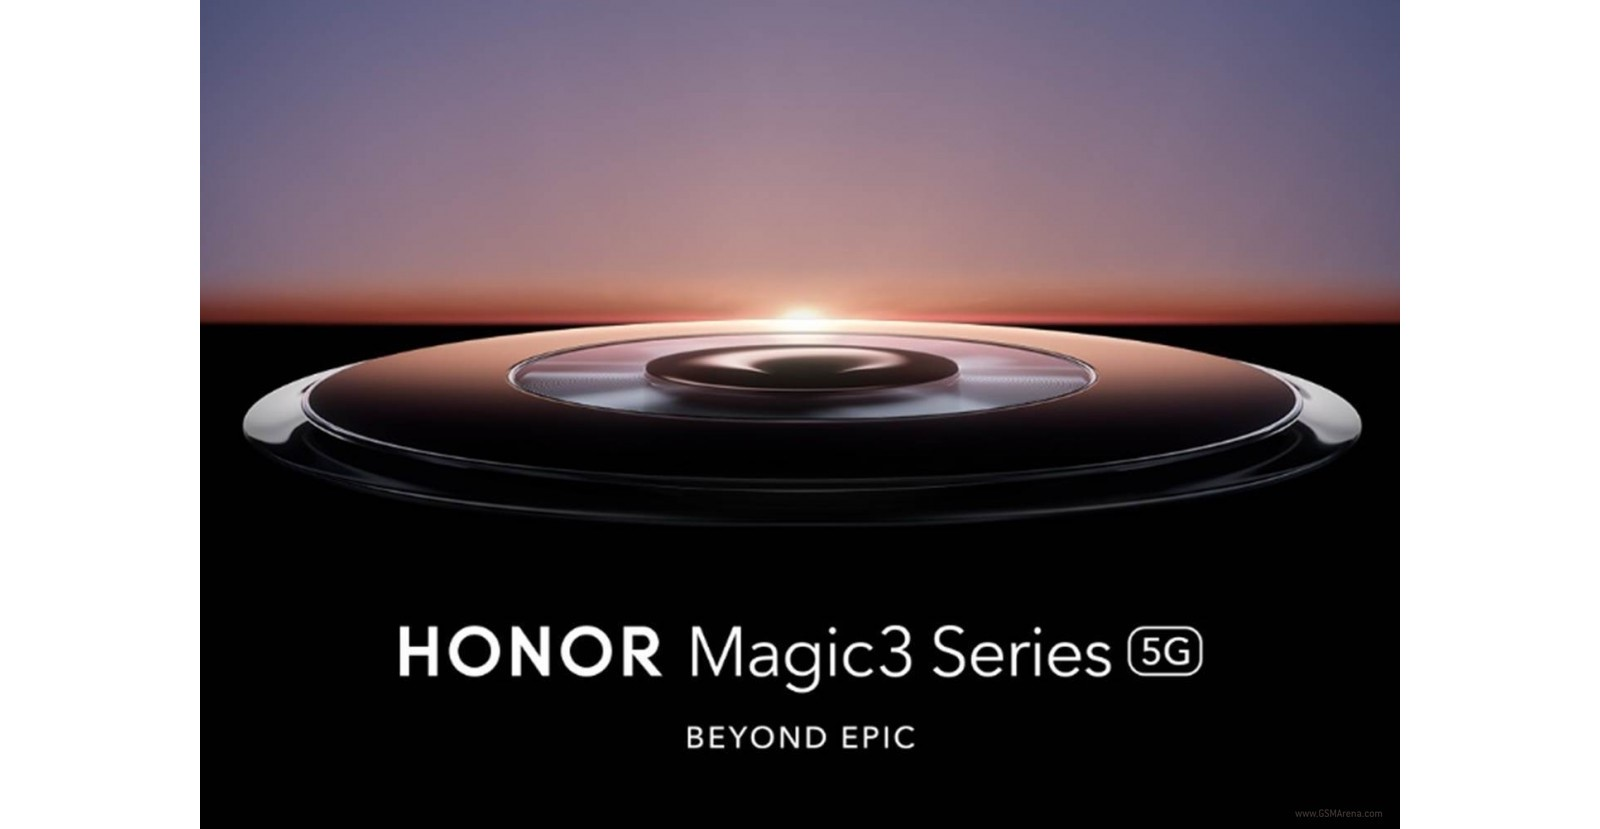 Honor announces a global launch date for the flagship Magic3 series - Notebookcheck.net